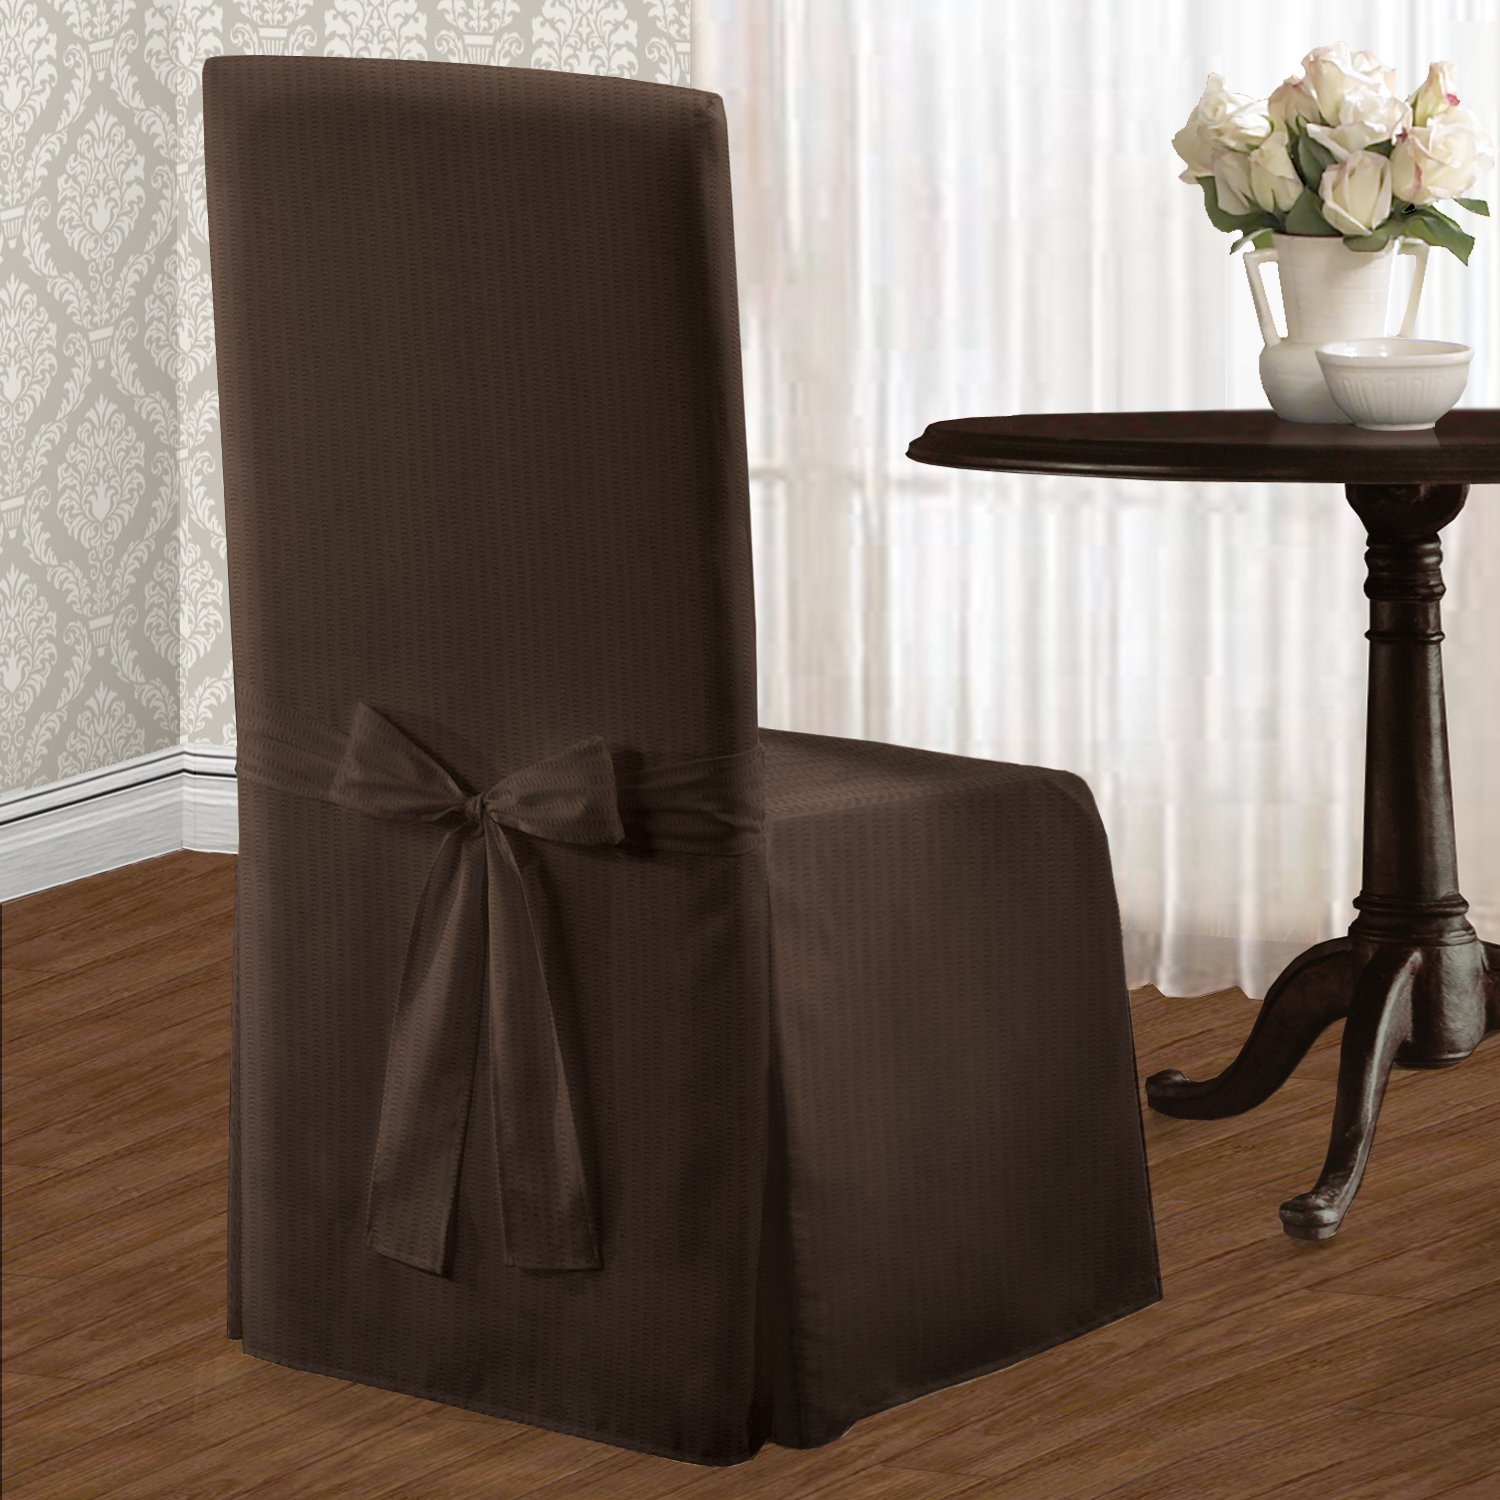 with different triple barrel color simple homesfeed chair slipcovers